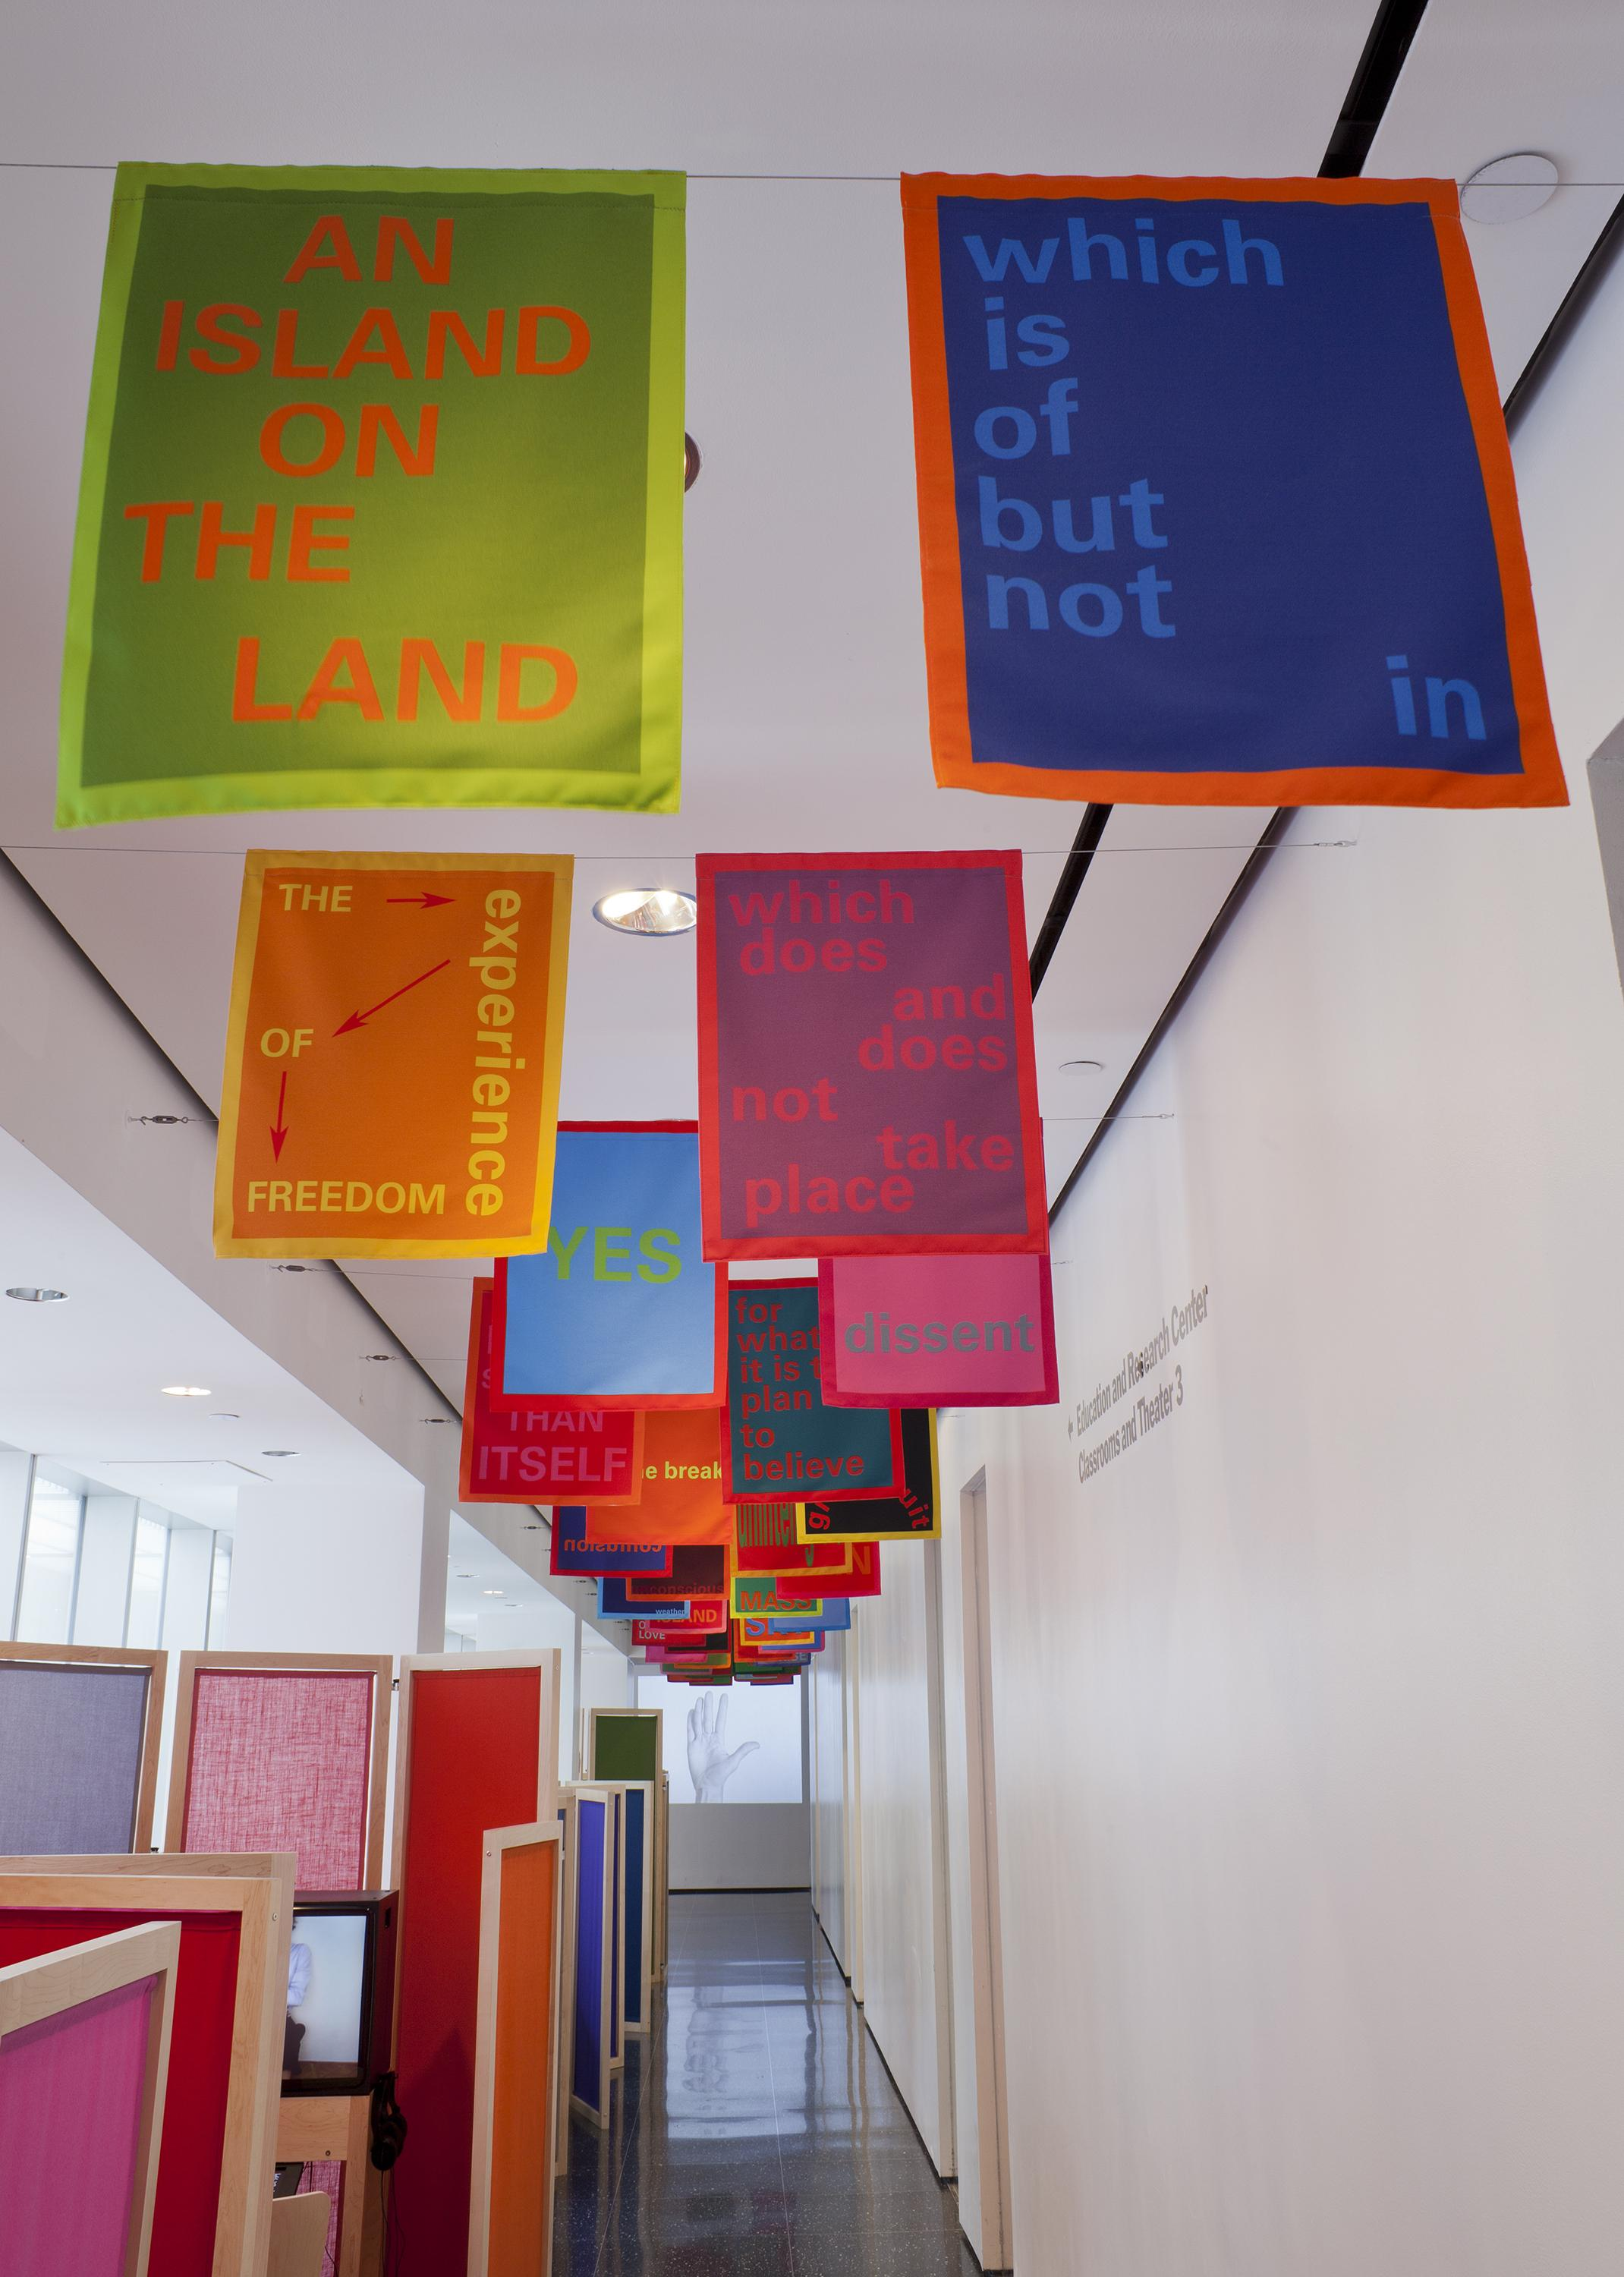 Multicolored banners with text are hung in pairs from the ceiling. Below, wooden and fabric room separators run the length of a white gallery.